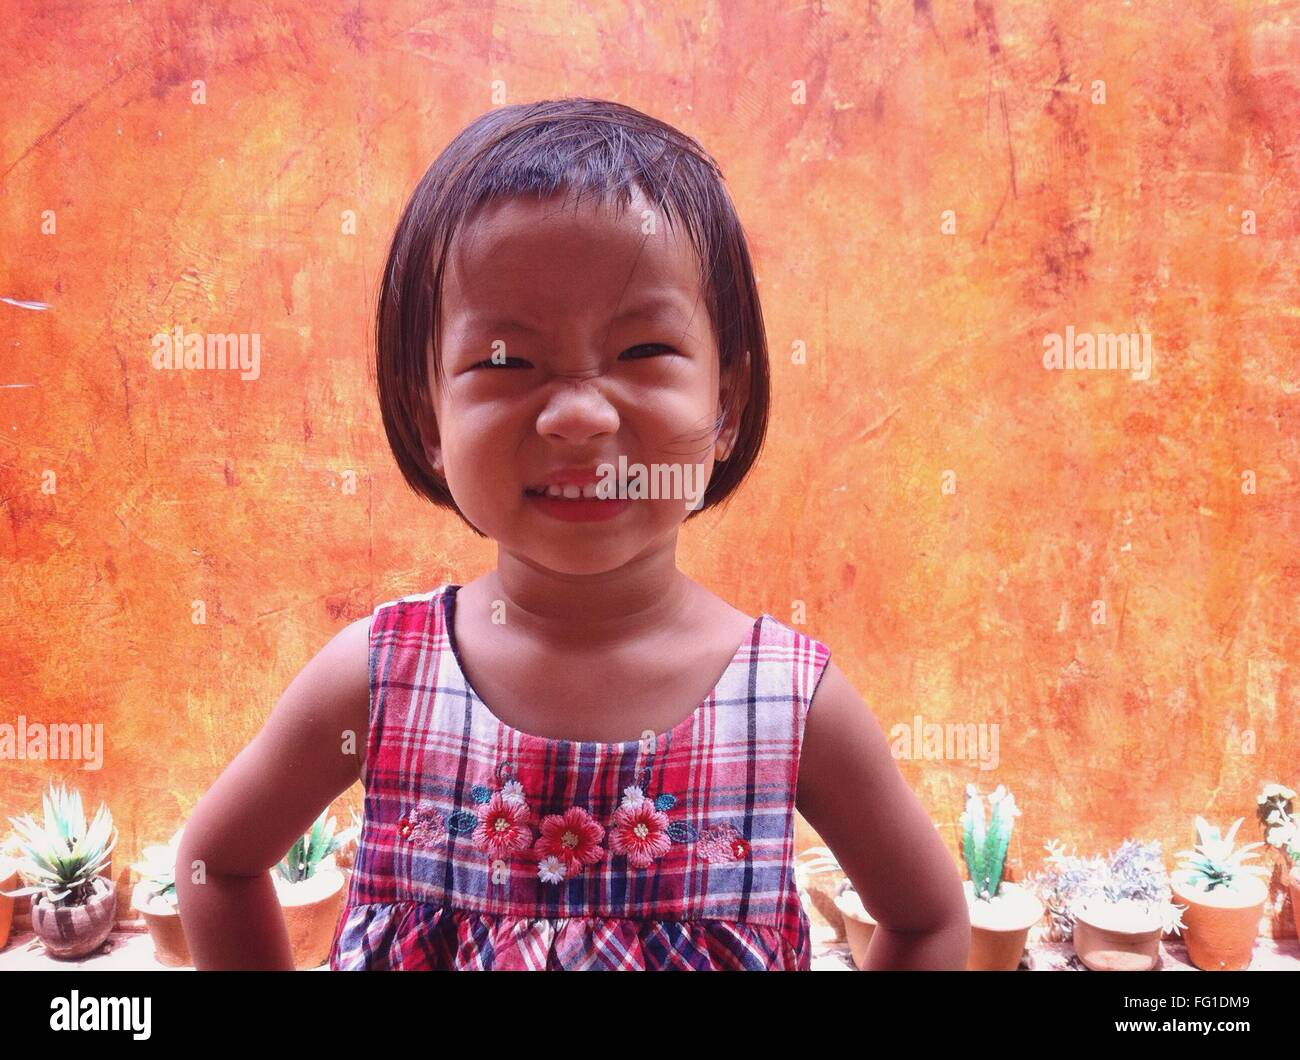 Portrait Of Cute Girl Making Face Outdoors - Stock Image